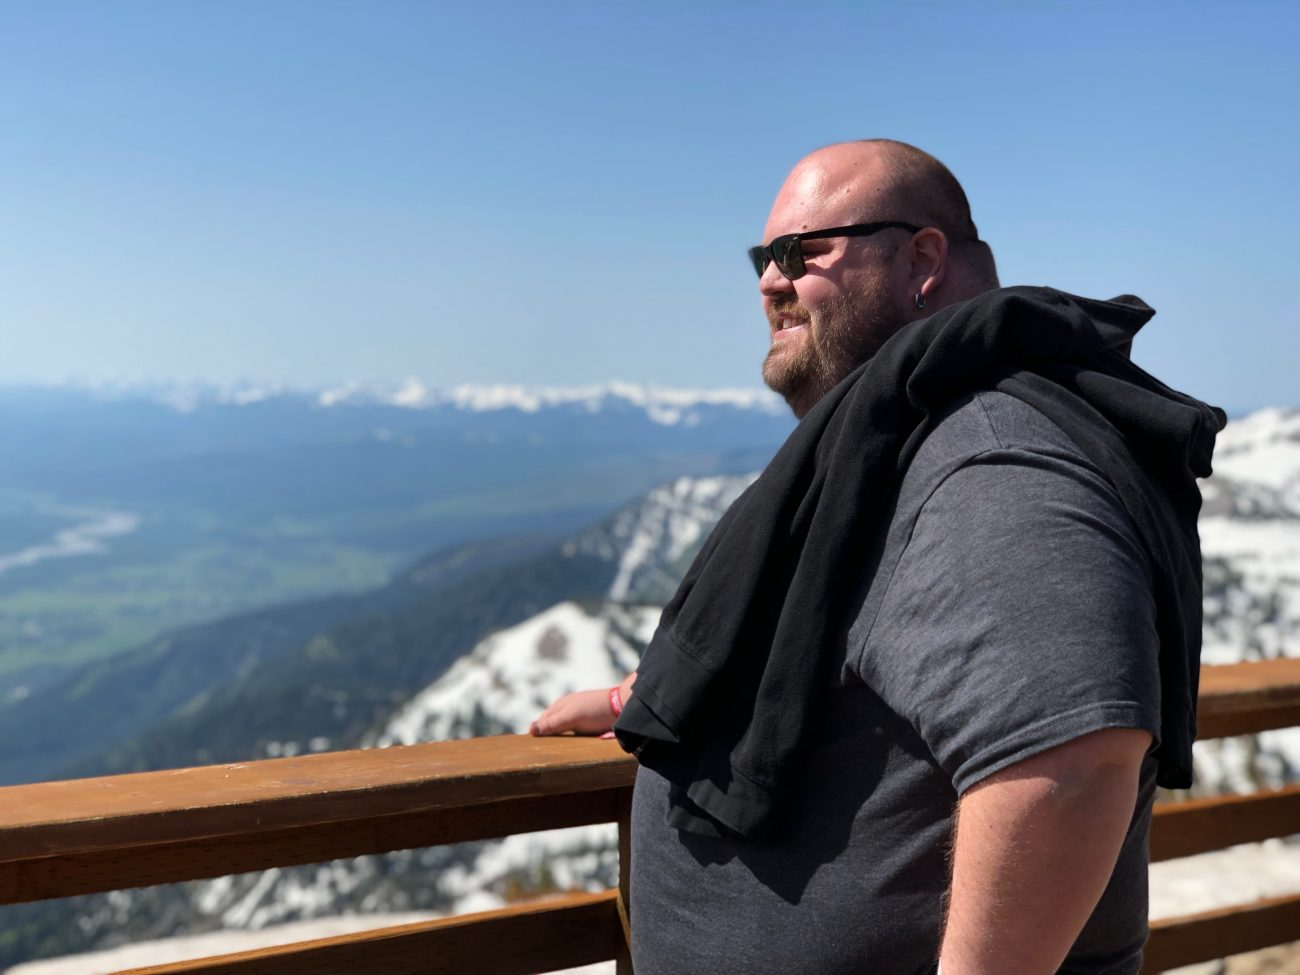 Brad Miller looks at the mountains